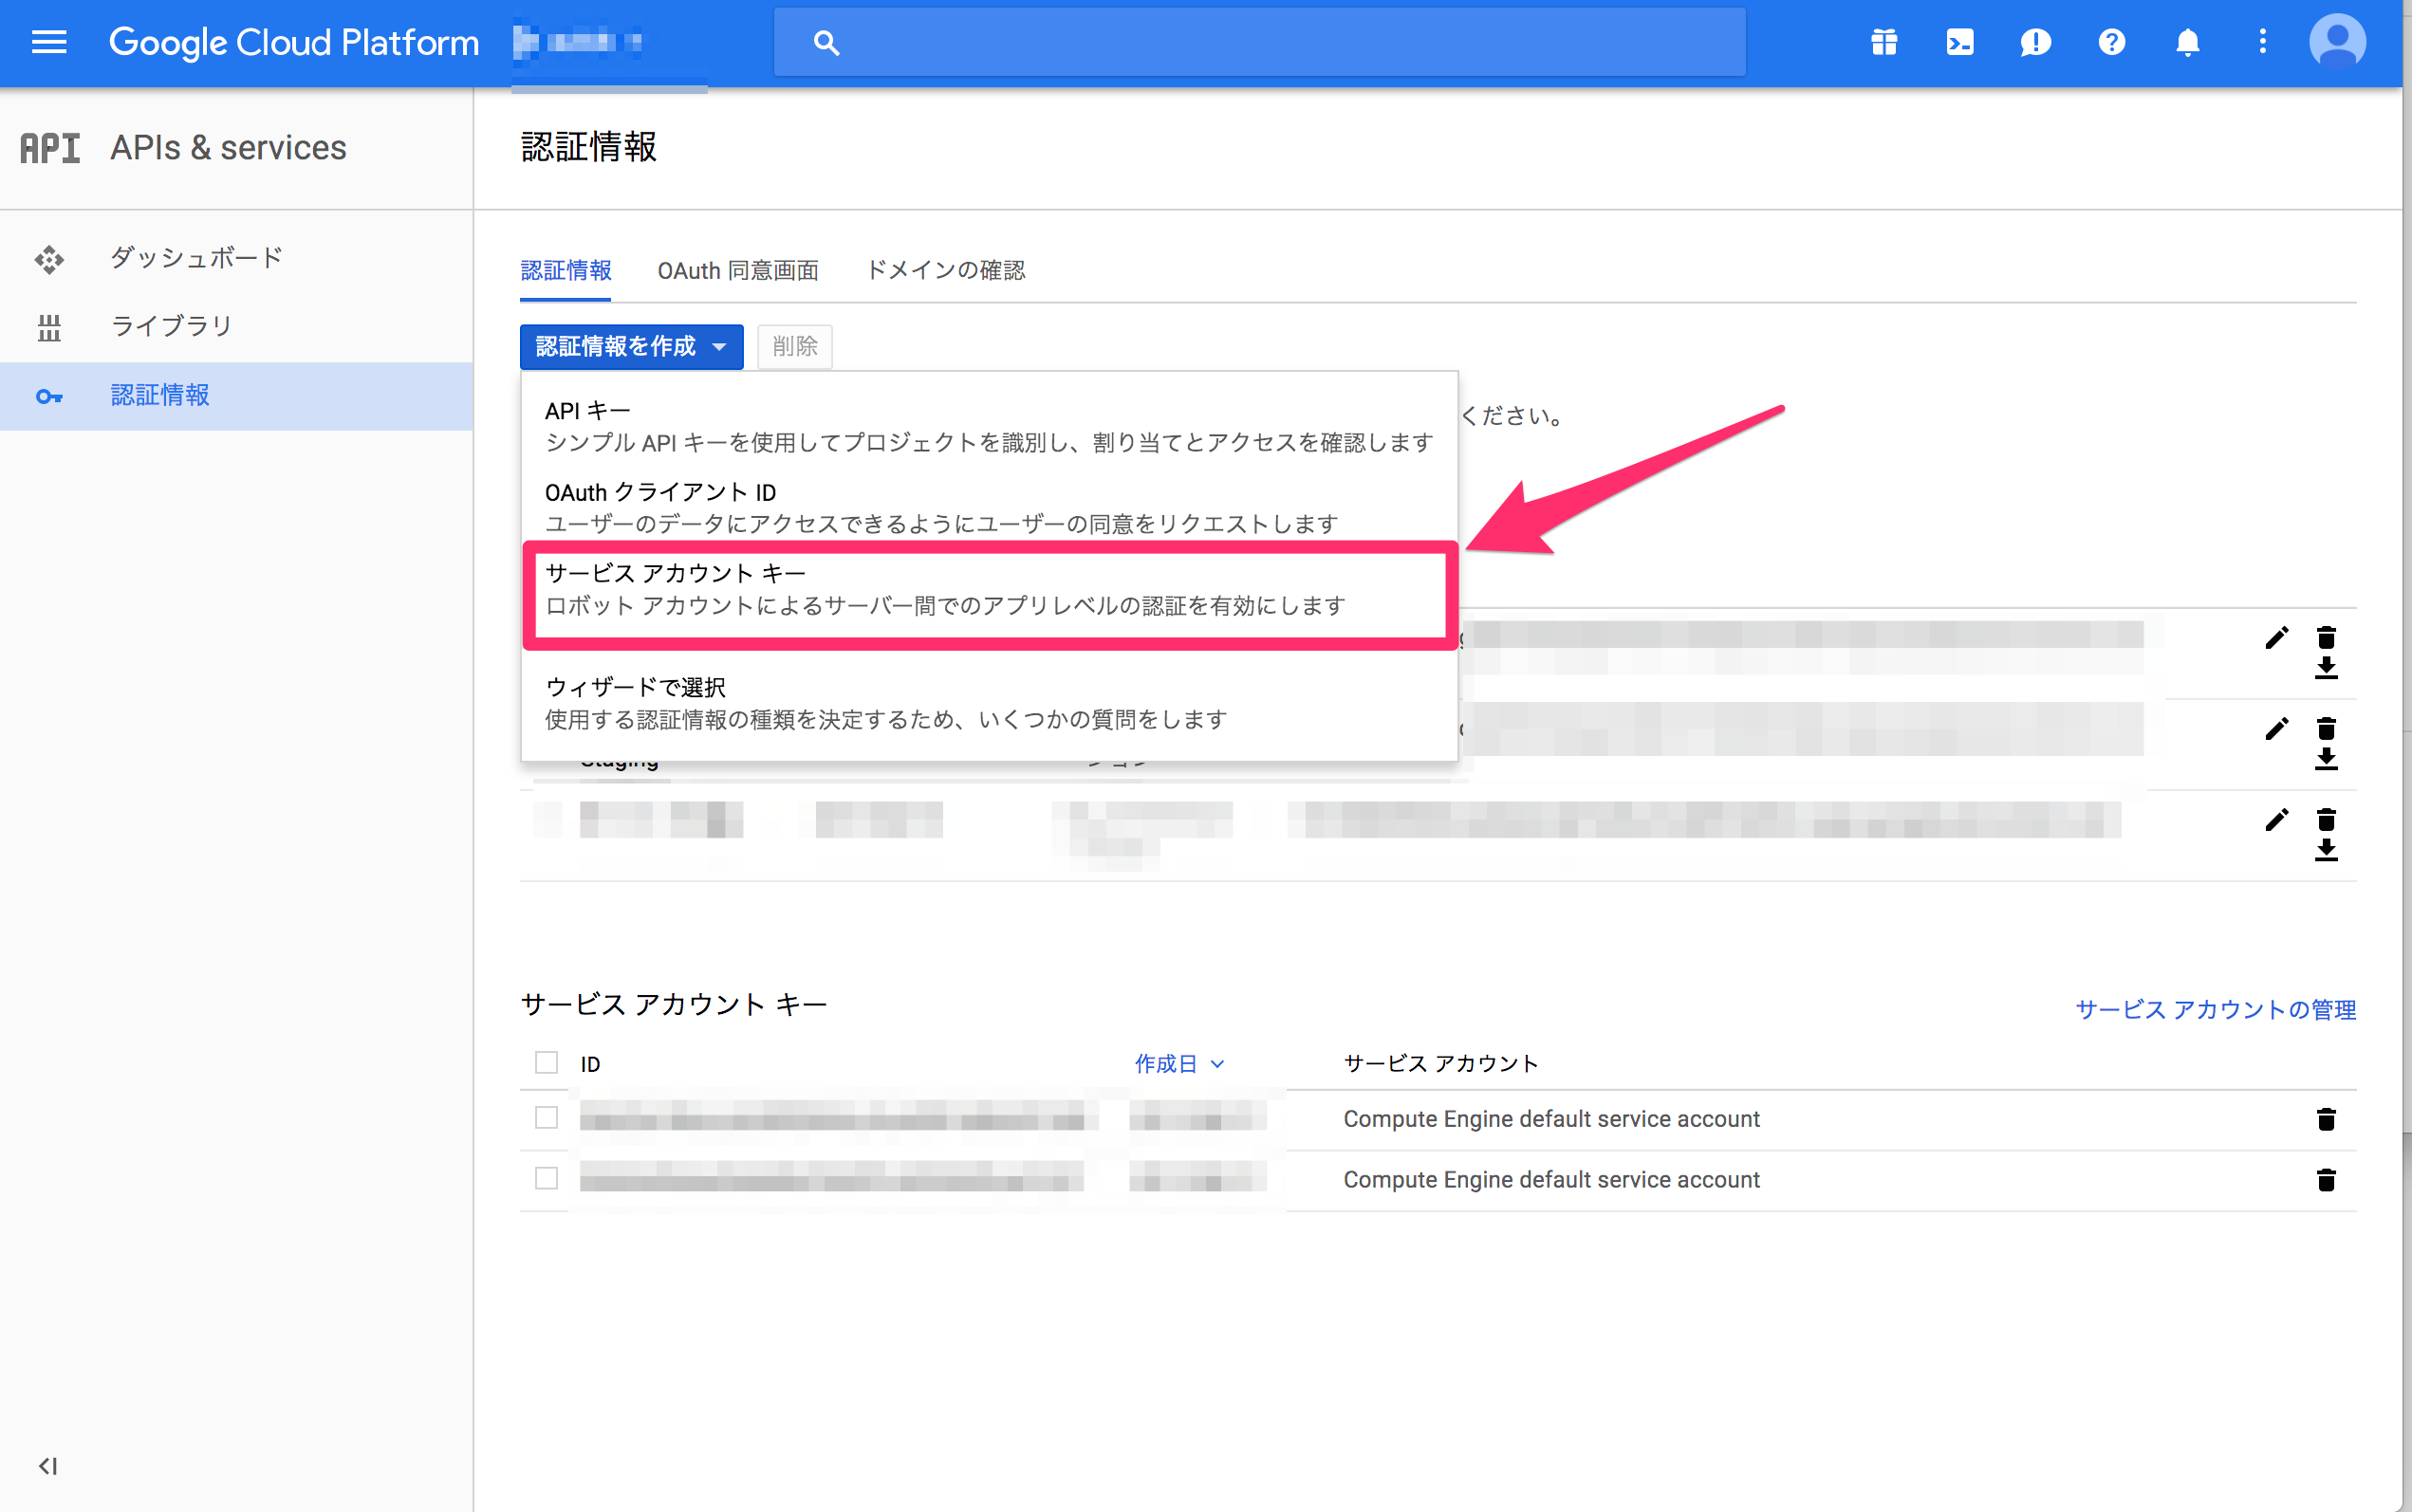 認証情報_-_autok_and_iharakenji_s_notebook_—_Evernote_and_Google_翻訳.png